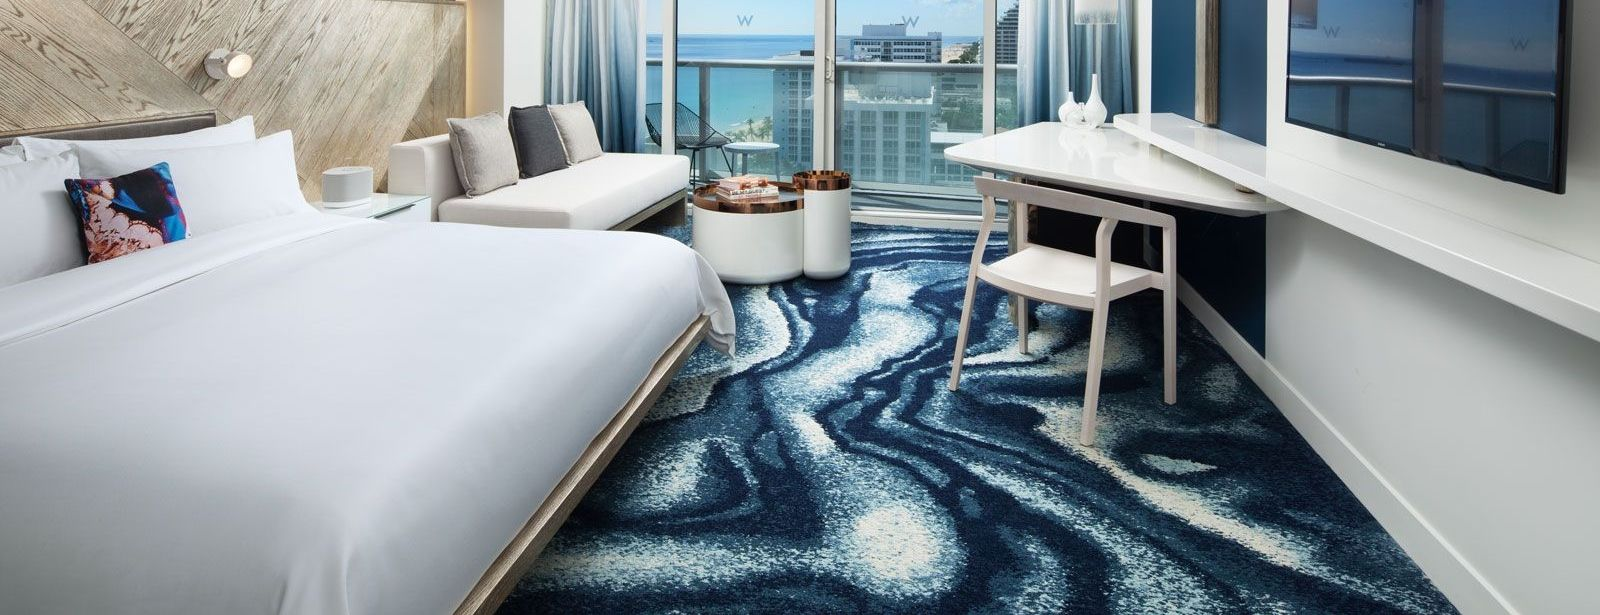 Spectacular Ocean View Guest Room | W Fort Lauderdale